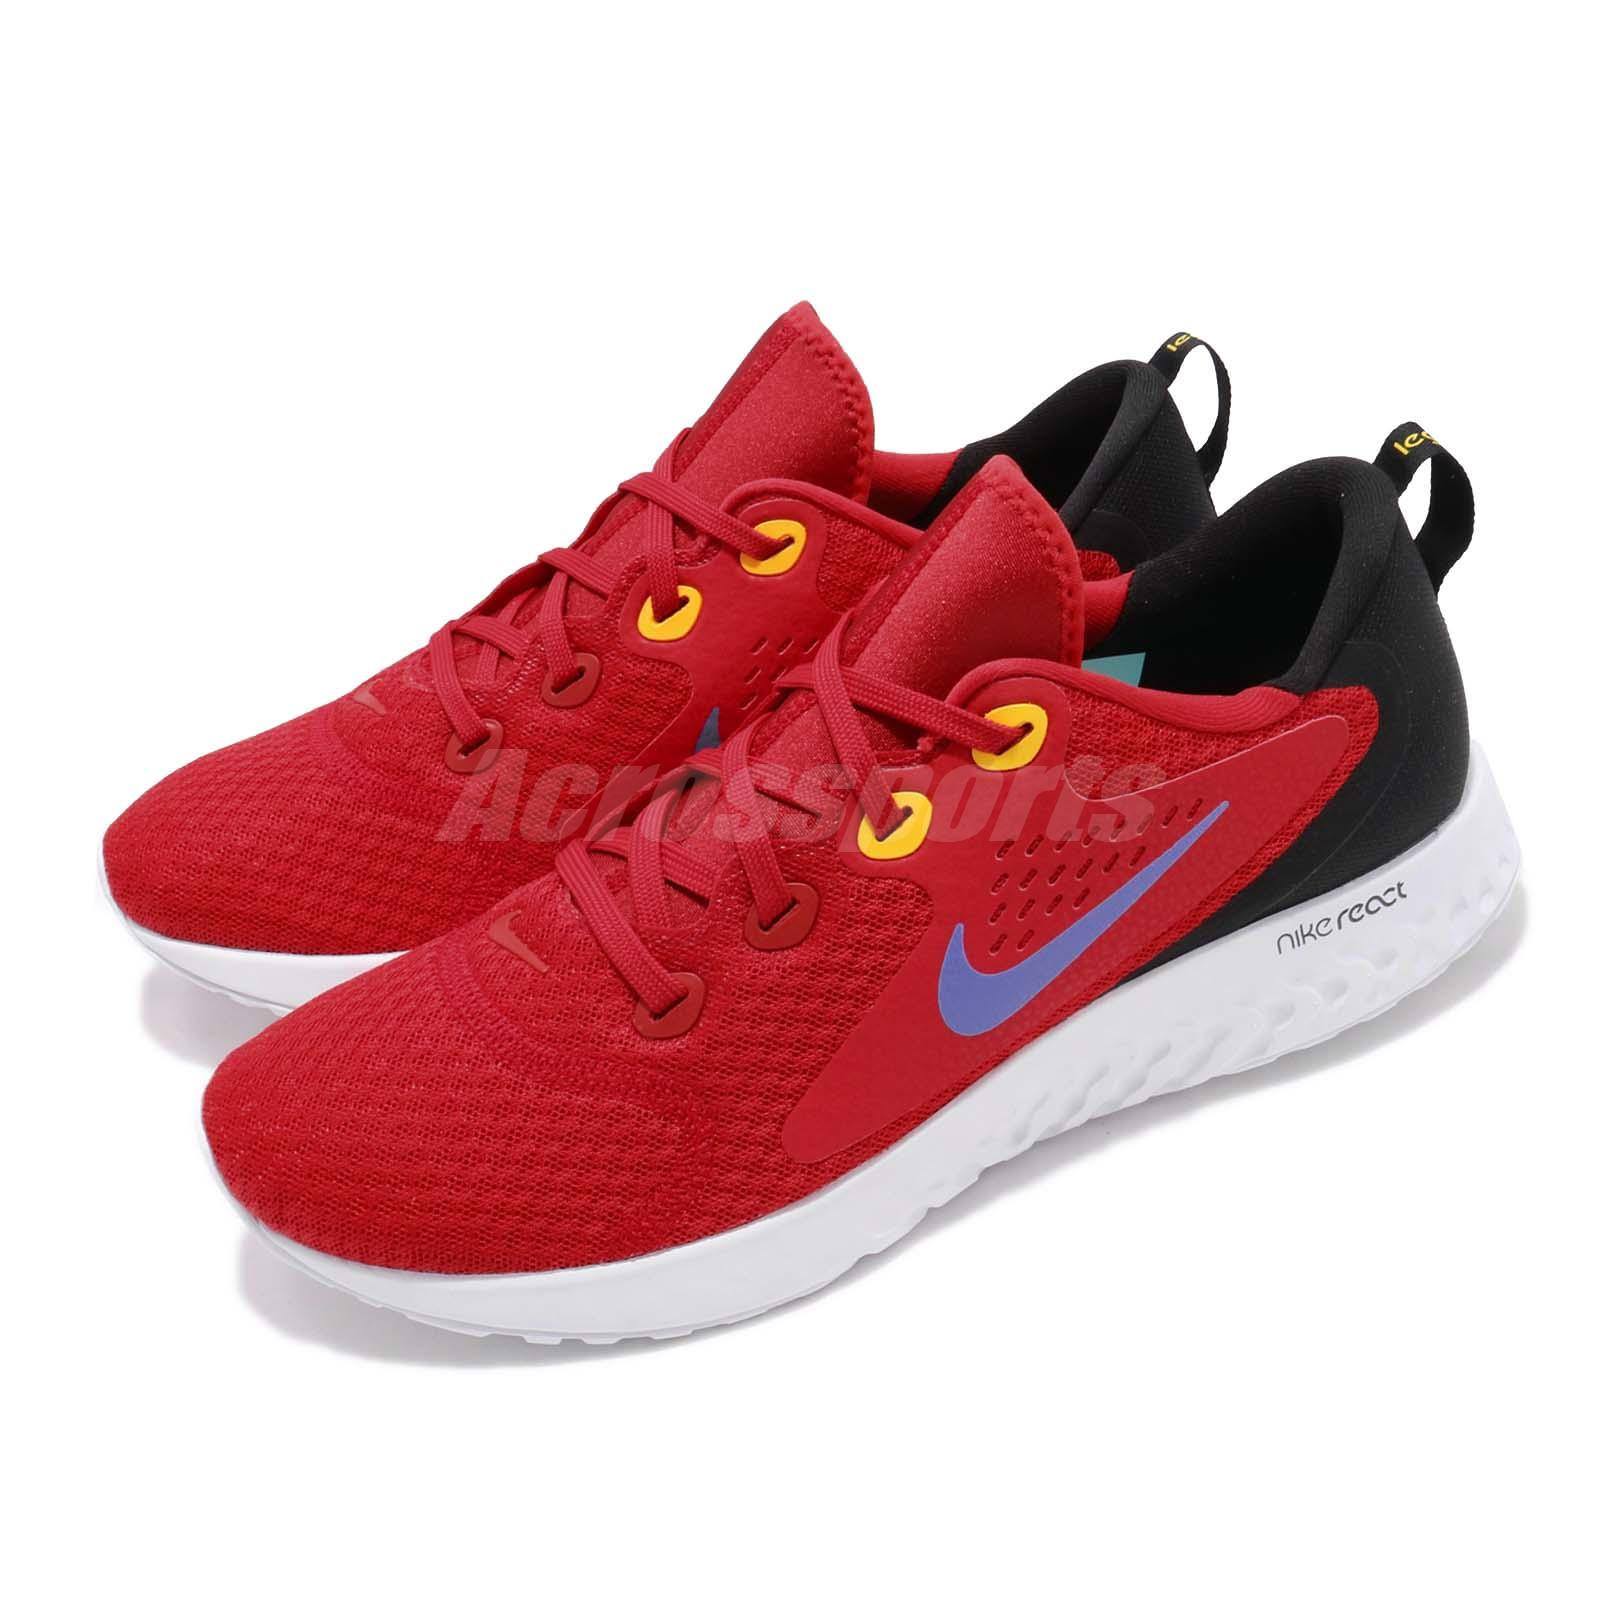 89342a479f07 Details about Nike Legend React Red Hyper Grape White Men Running Shoes  Sneakers AA1625-601